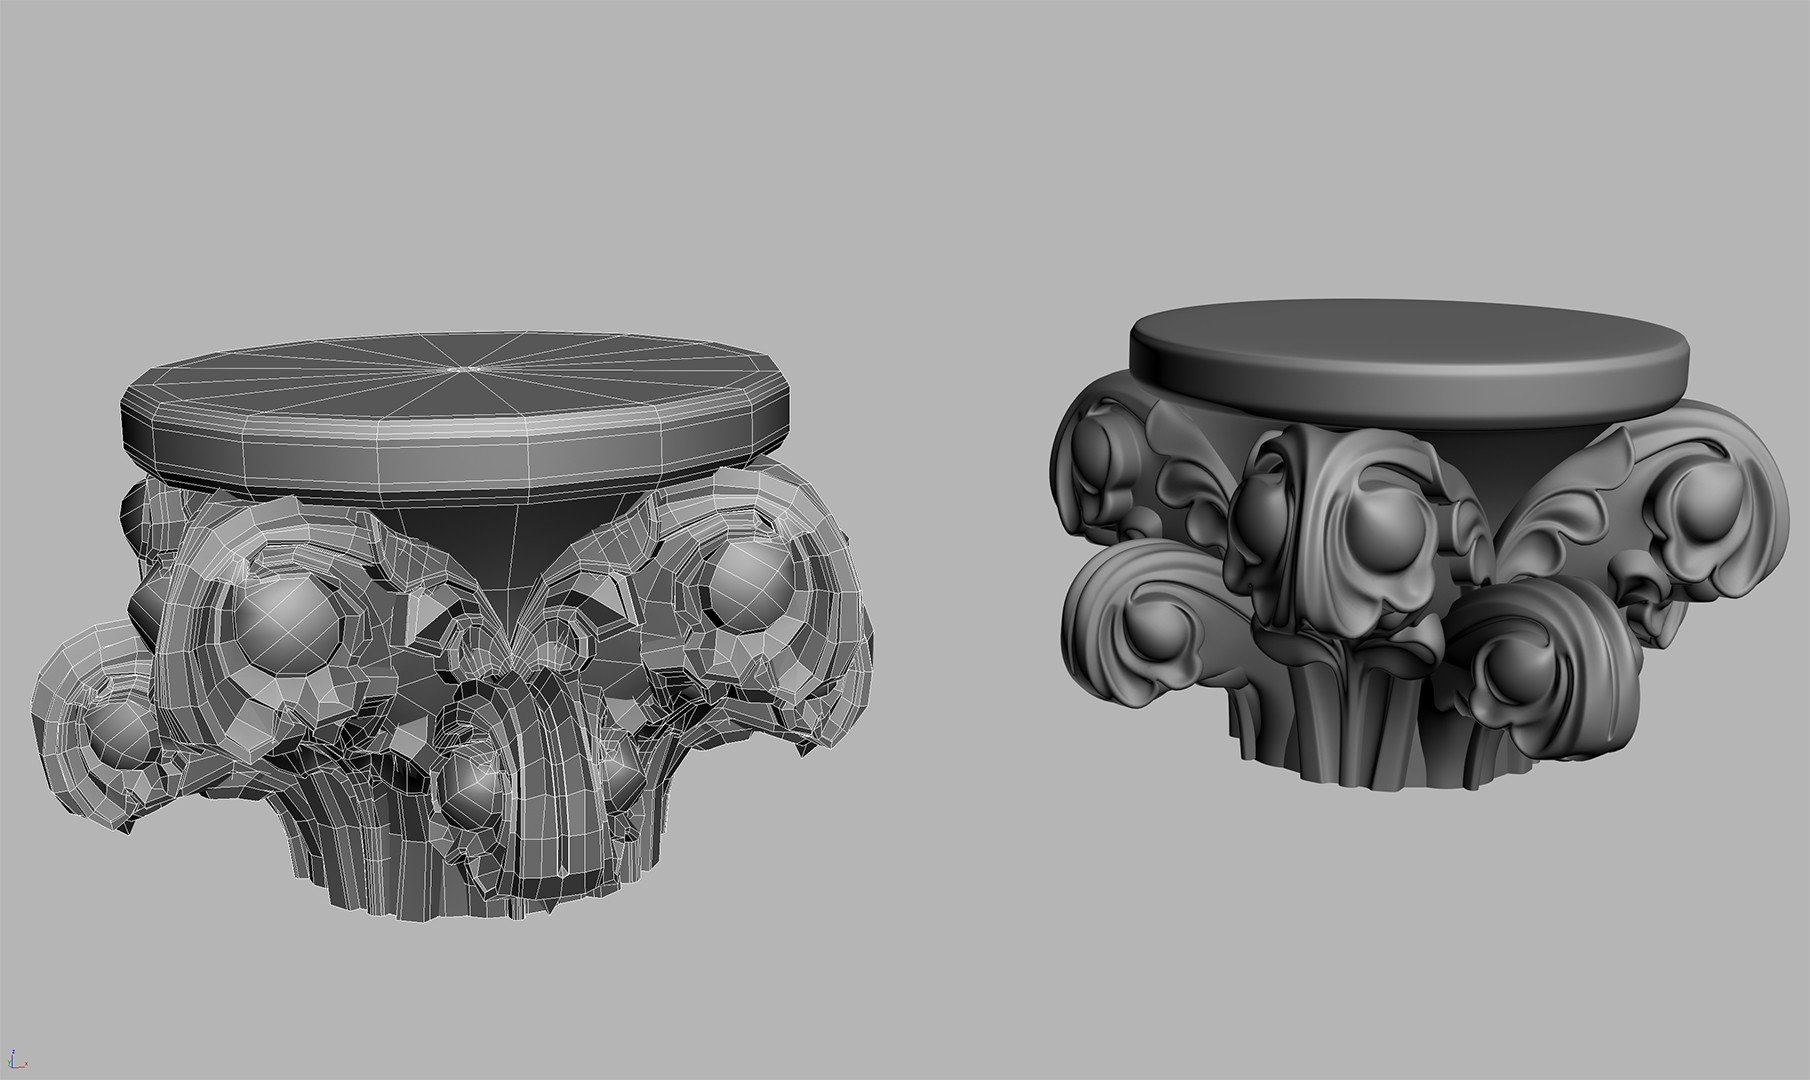 Sub-D Ornate (then dynameshed into Zbrush for baking)